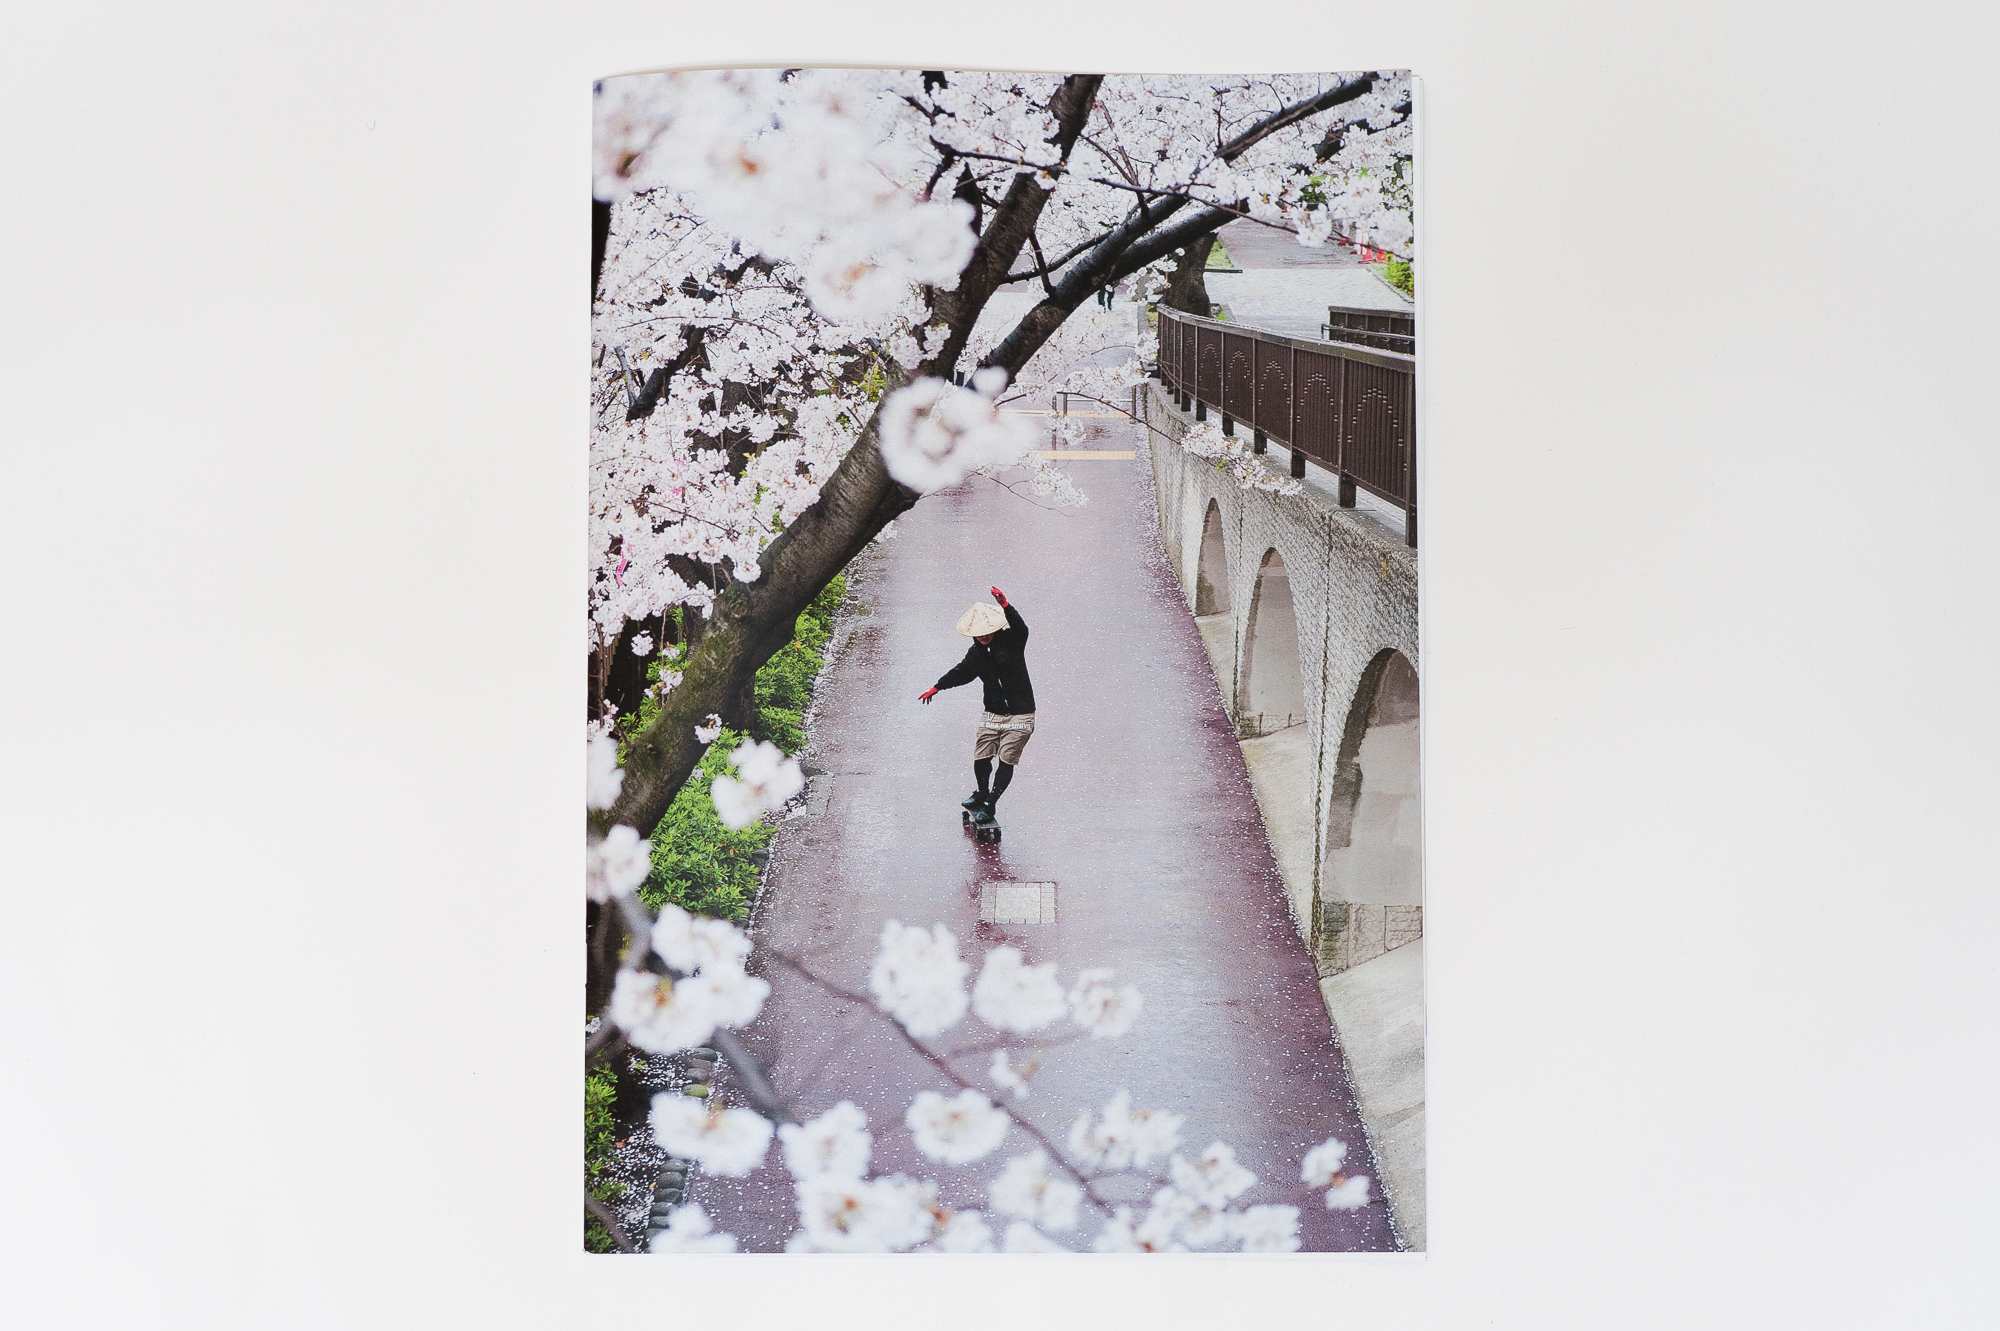 """SAKURA"" (the Japanese word for cherry blossom), is a zine featuring Japanese skateboarding legend, Takahiro Morita. Photographed in Tokyo during the short two week period in which the flowers are in full bloom, ""SAKURA"" captures the spirit and cultural significance of the cherry blossoms and explores how skateboarding interacts with the flower filled cityscape. Designed by Mike Sikora, and published by the Milk Gallery at Milk Studios, New York. Copies available for purchase at  Theories of Atlantis Distribution . Watch the accompanying short film produced by Far East Skate Network  here ."